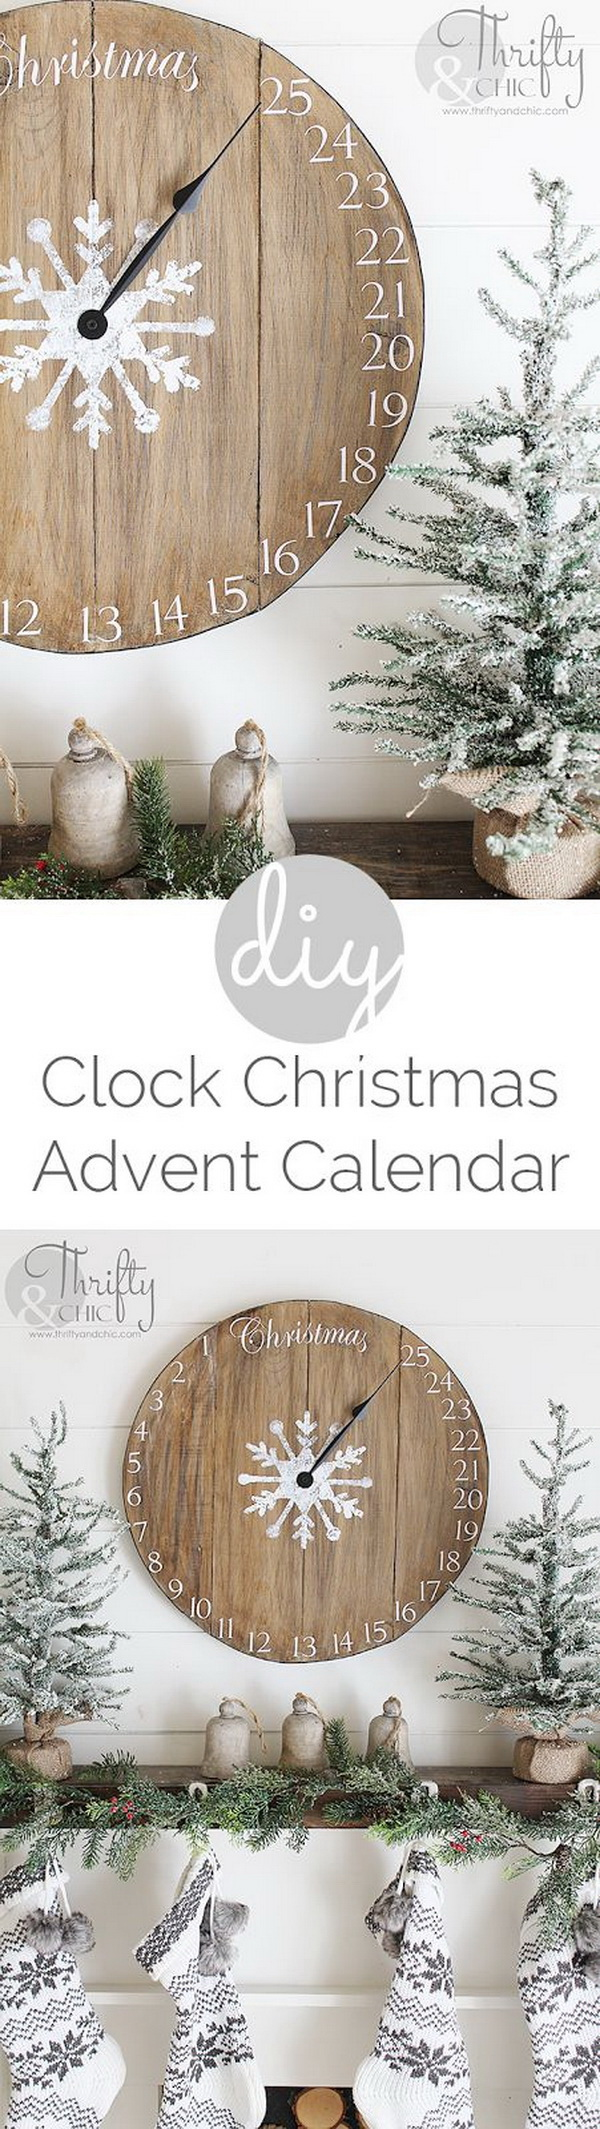 DIY Wood Clock Christmas Advent Calendar. Another easy and simple project for your rustic farmhouse decoration this Christmas!